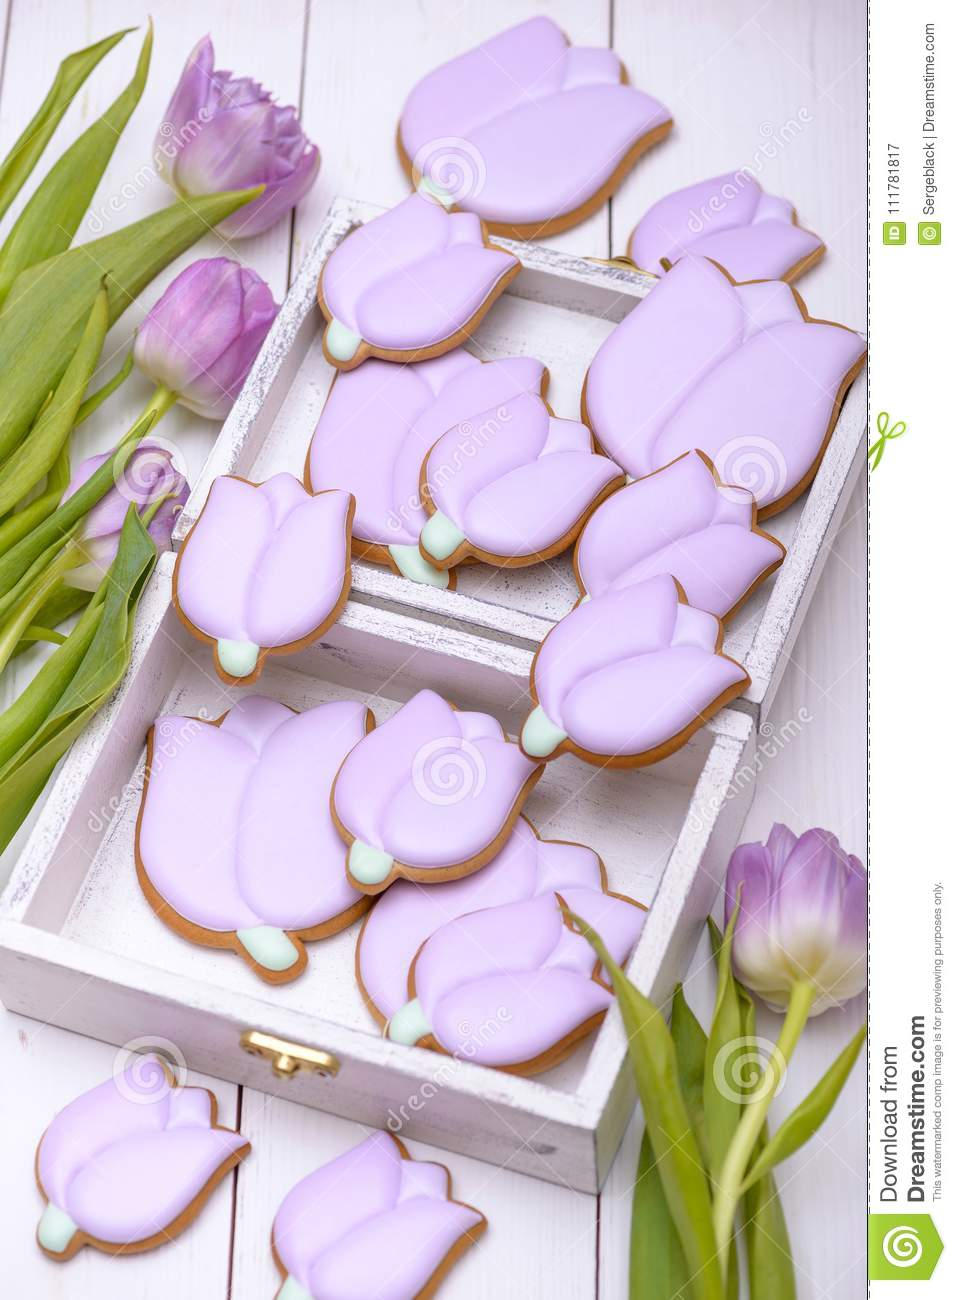 Homemade gingerbread cookies in the shape of purple tulip